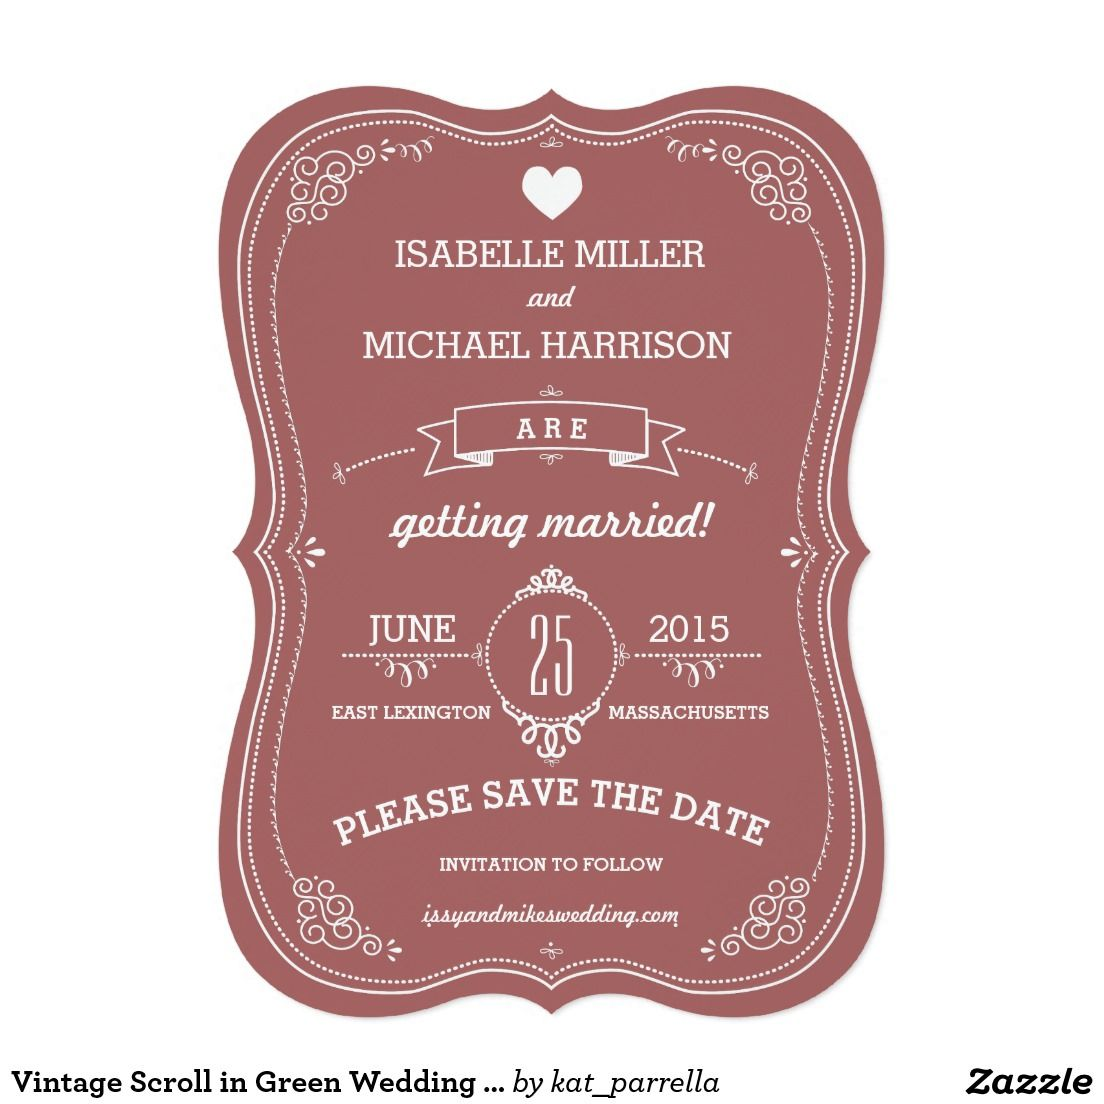 Vintage Scroll in Green Wedding Save the Date 5x7 Paper Invitation Card